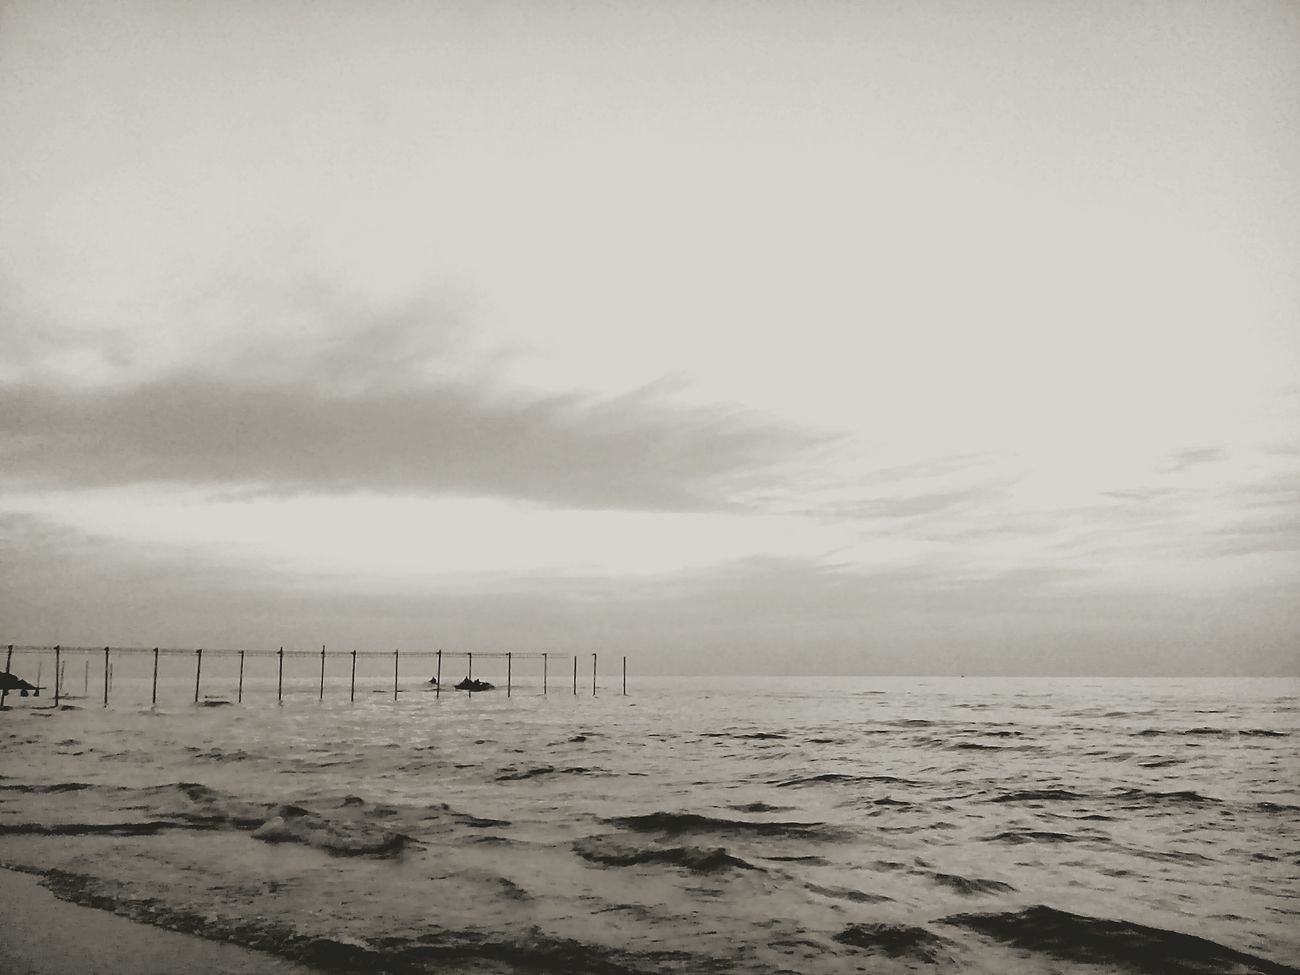 I love Sea And Sky Art Taking Photos Iran Relaxing Hello World Sea View Enjoying Life First Eyeem Photo Eyeemphoto Old Phone Photo Black And White Kianush Black & White Eye4photography  Natural EyeEm Best Shots Skyporn Sky Cellphone Photography Minimalism Photographic Memory